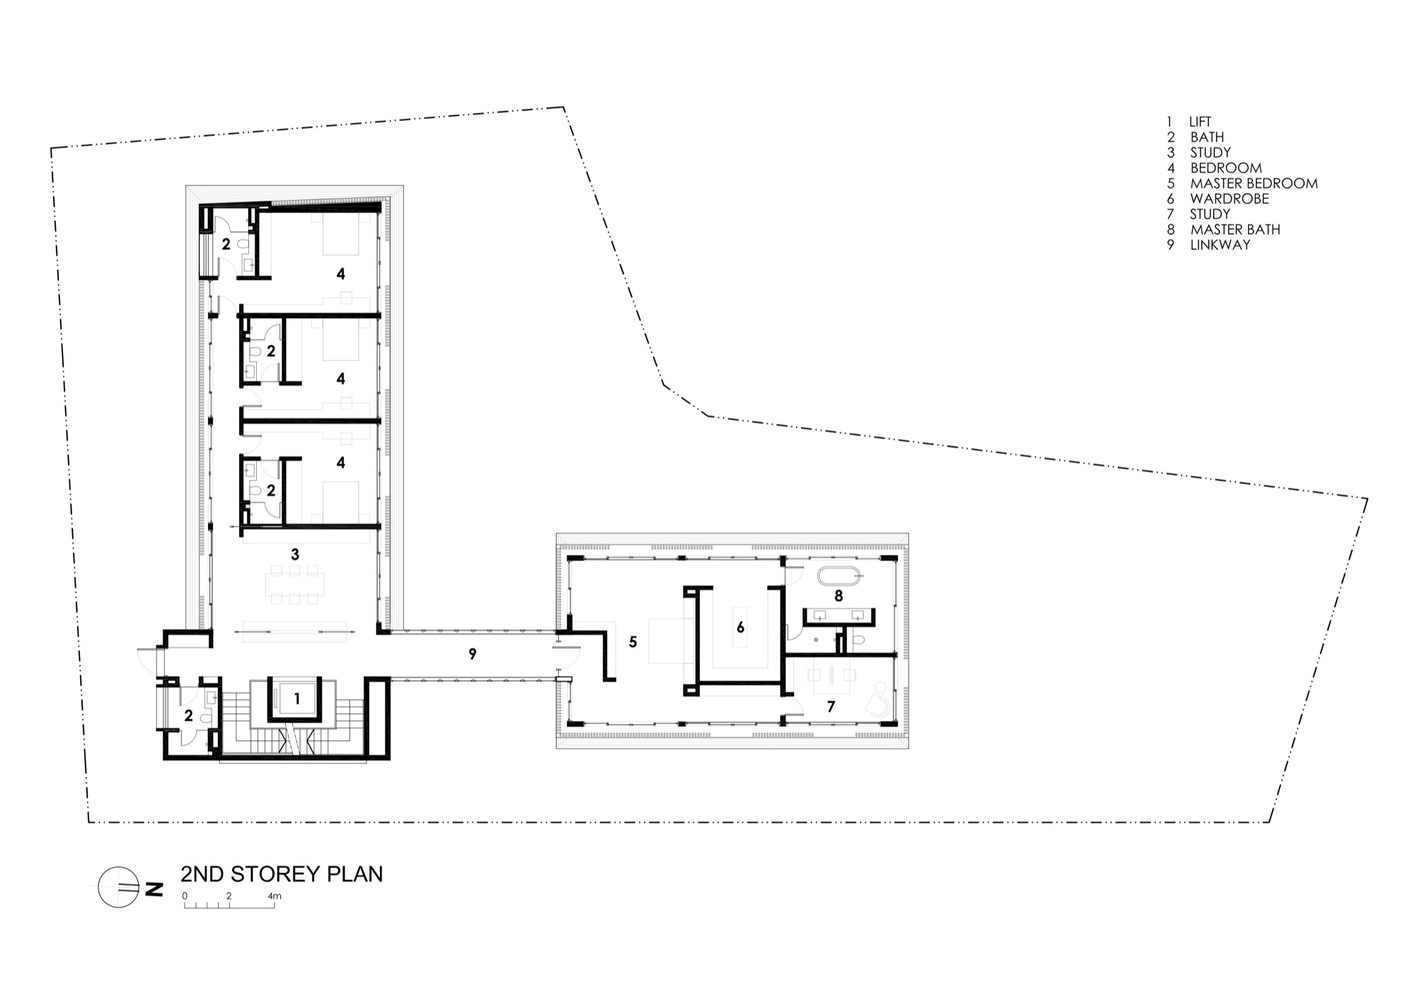 Gallery of Secret Garden House / Wallflower Architecture + ... on playground house plans, patio home floor plans, garden furniture, 1916 antique home plans, for the back yard guest house plans, potting house plans, landscaping plans, minimalist home floor plans, chicken coop plans, nursing home floor plans, dogs house plans, permaculture house plans, garden playhouse, crafts house plans, michigan house plans,